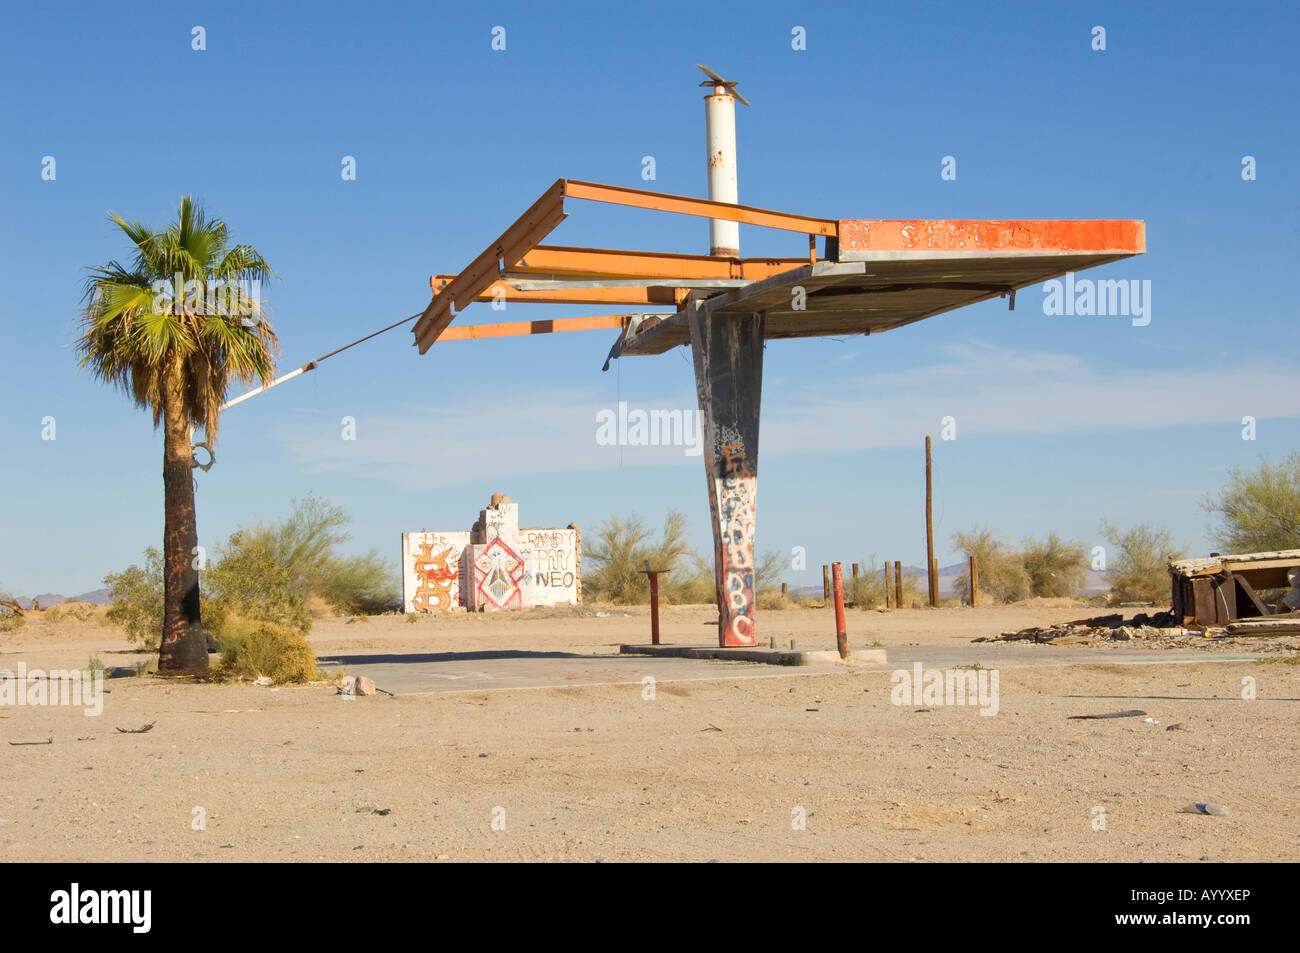 Old gas station in the middle of nowhere - Stock Image